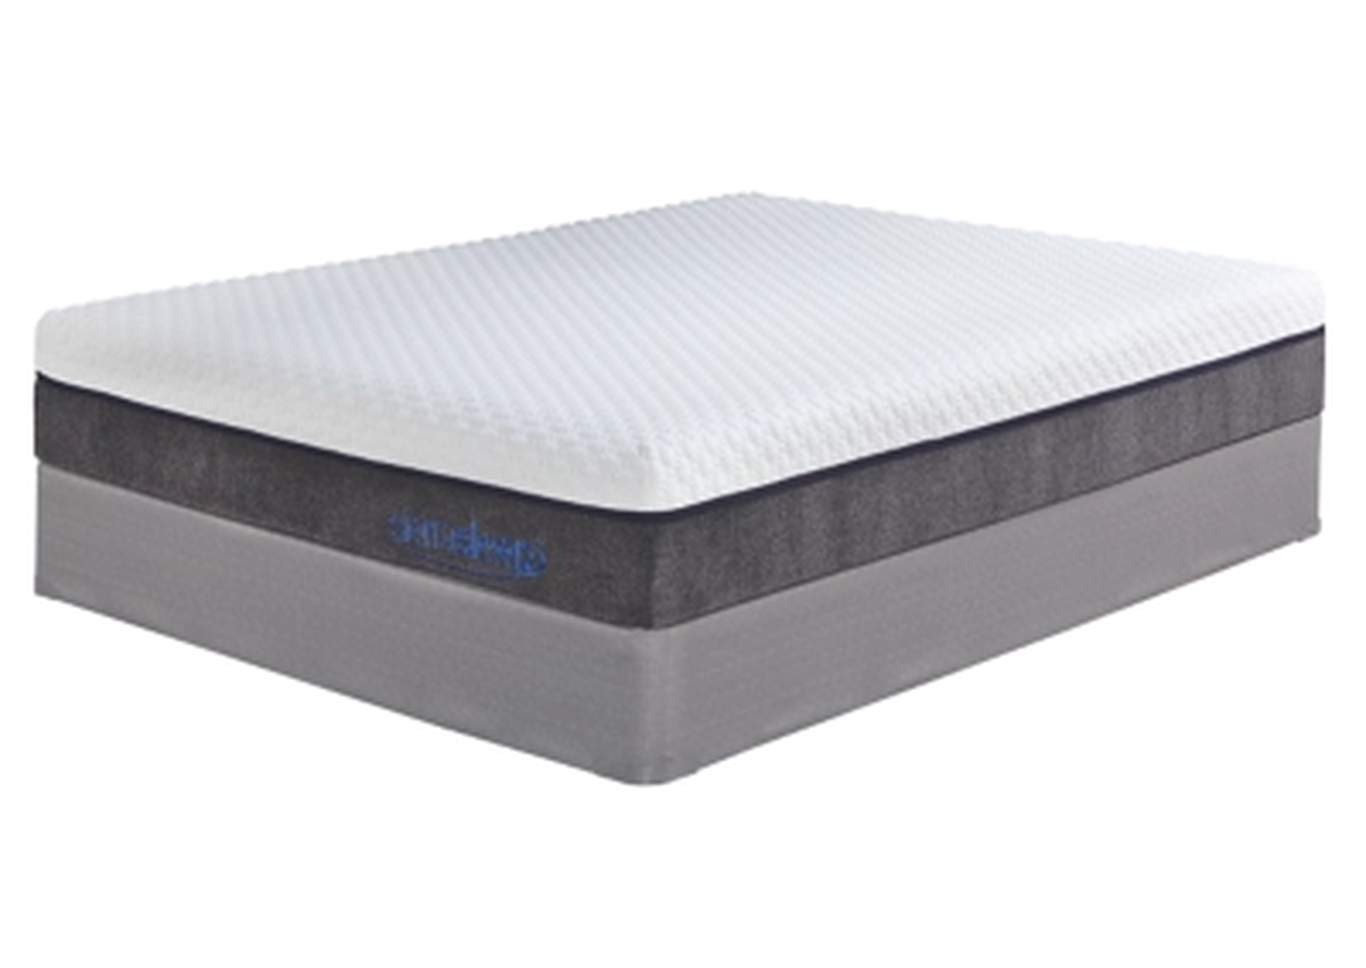 home mattress sierra sleep mattresses mygel hybrid 1100 q